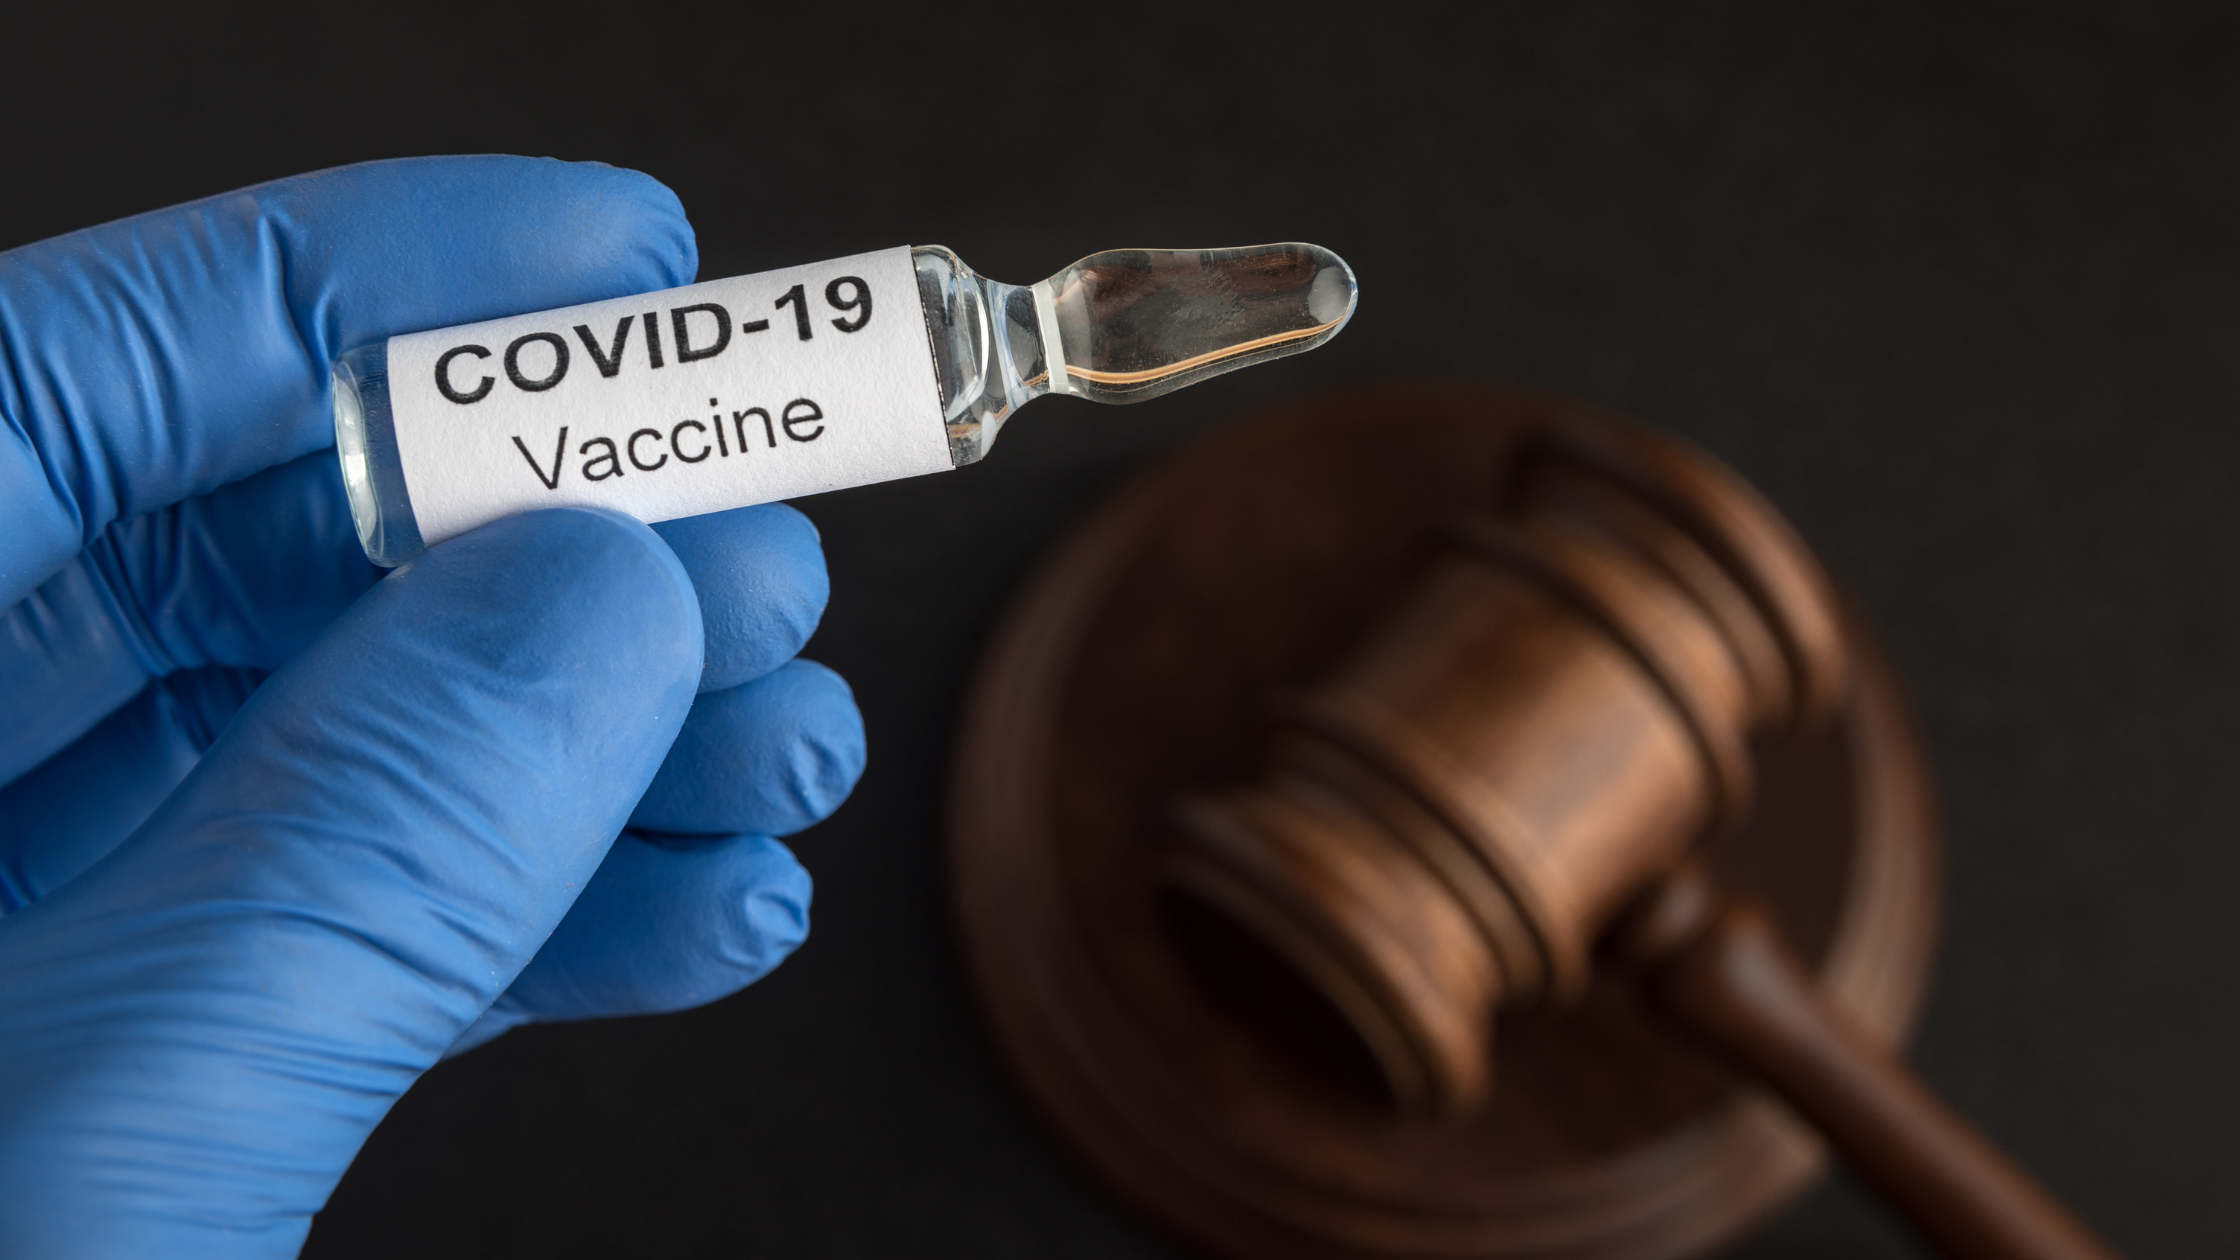 Blog Southwestern HR Consulting - COVID-19 Vaccines and Employer Regulations